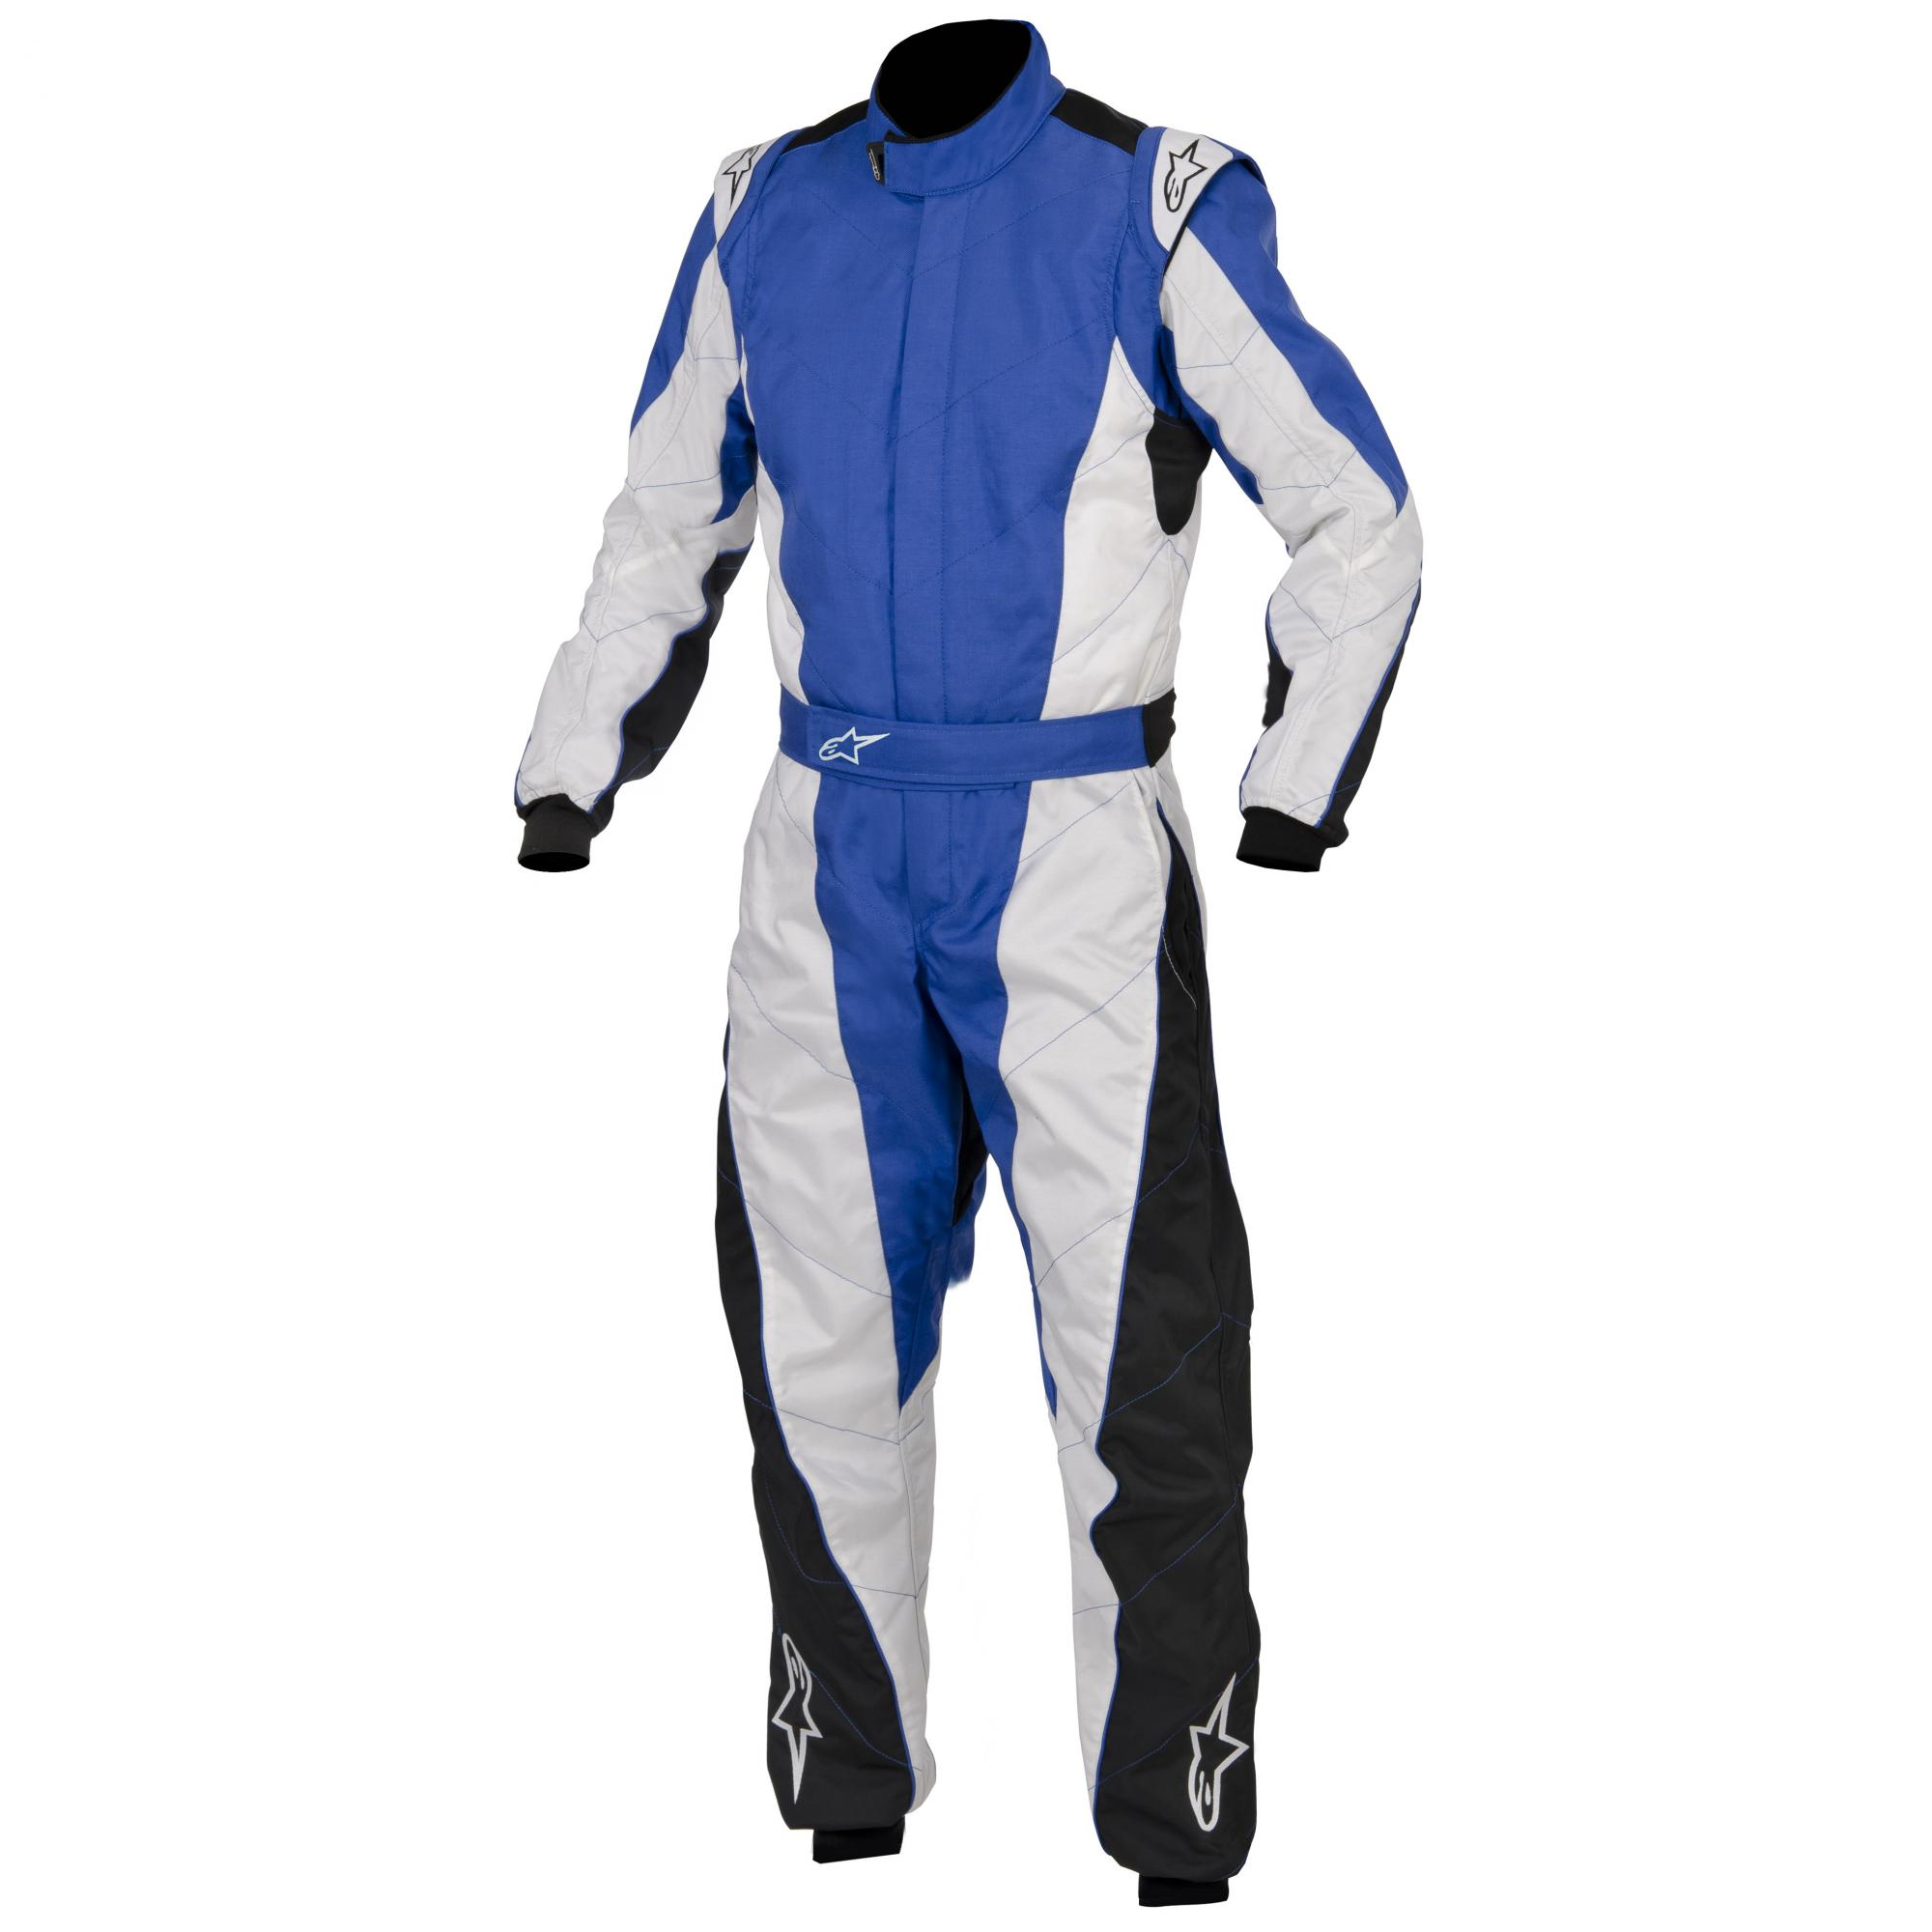 Alpinestars K-MX 5 Kart Suit Blue White